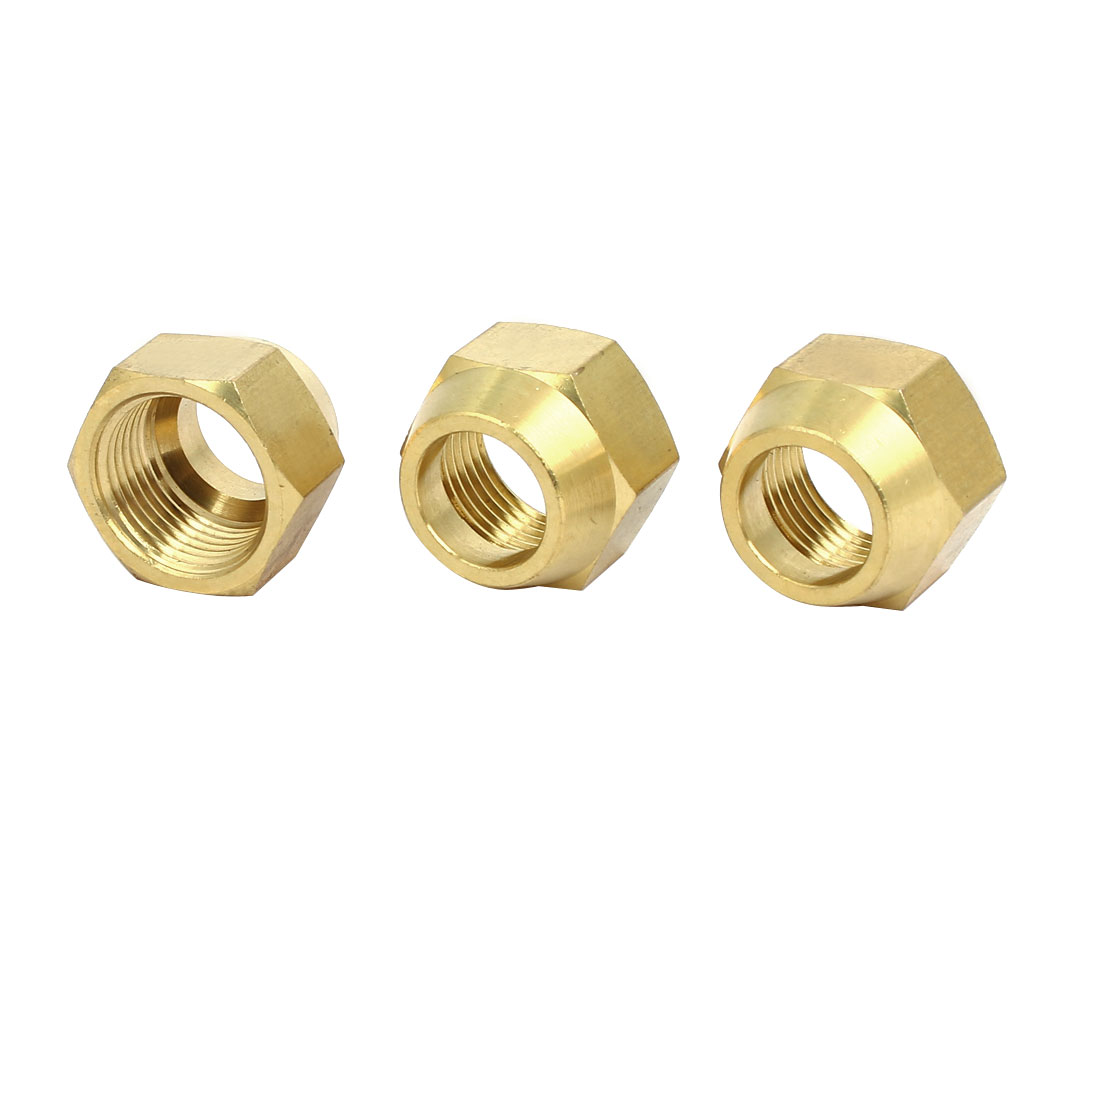 5/8BSP Brass Flare Nuts Air Conditioner Parts Fittings 3pcs for 16mm Dia Pipe